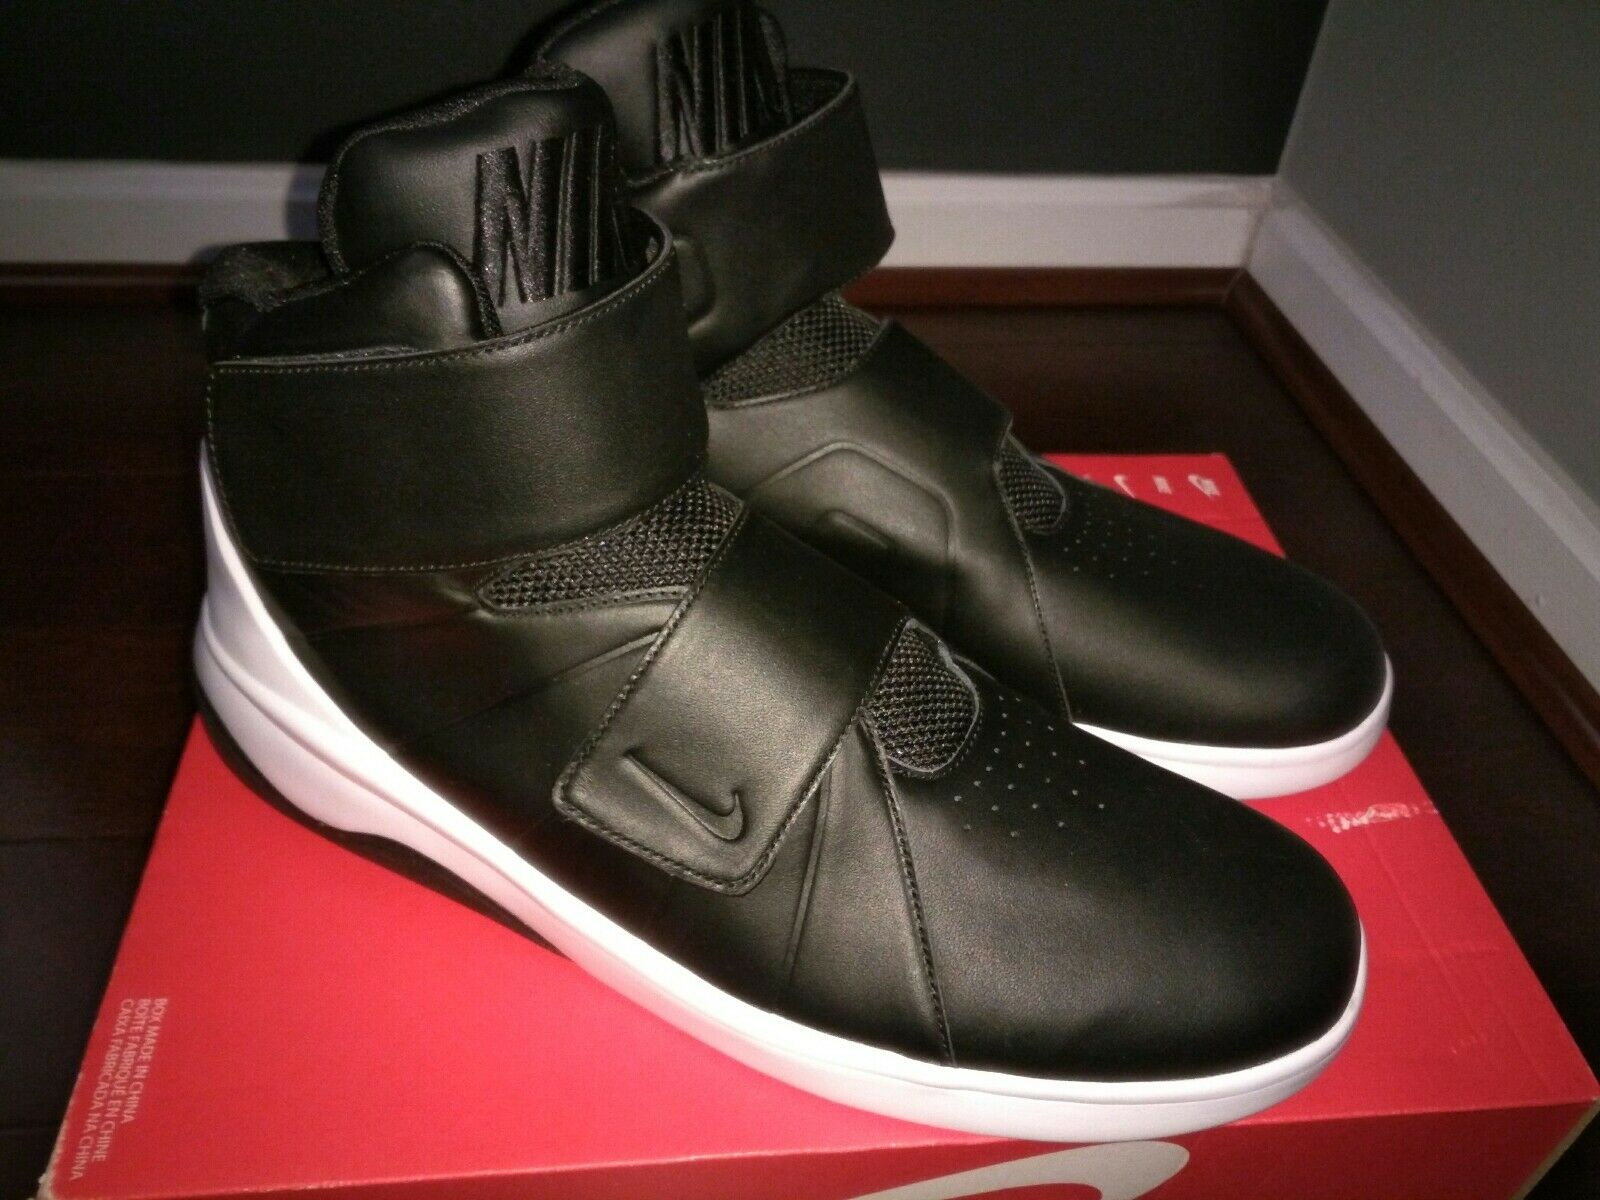 BRAND NEW NIKE MARXMAN RARE SIZE 15 MOST COMFORTABLE SHOES